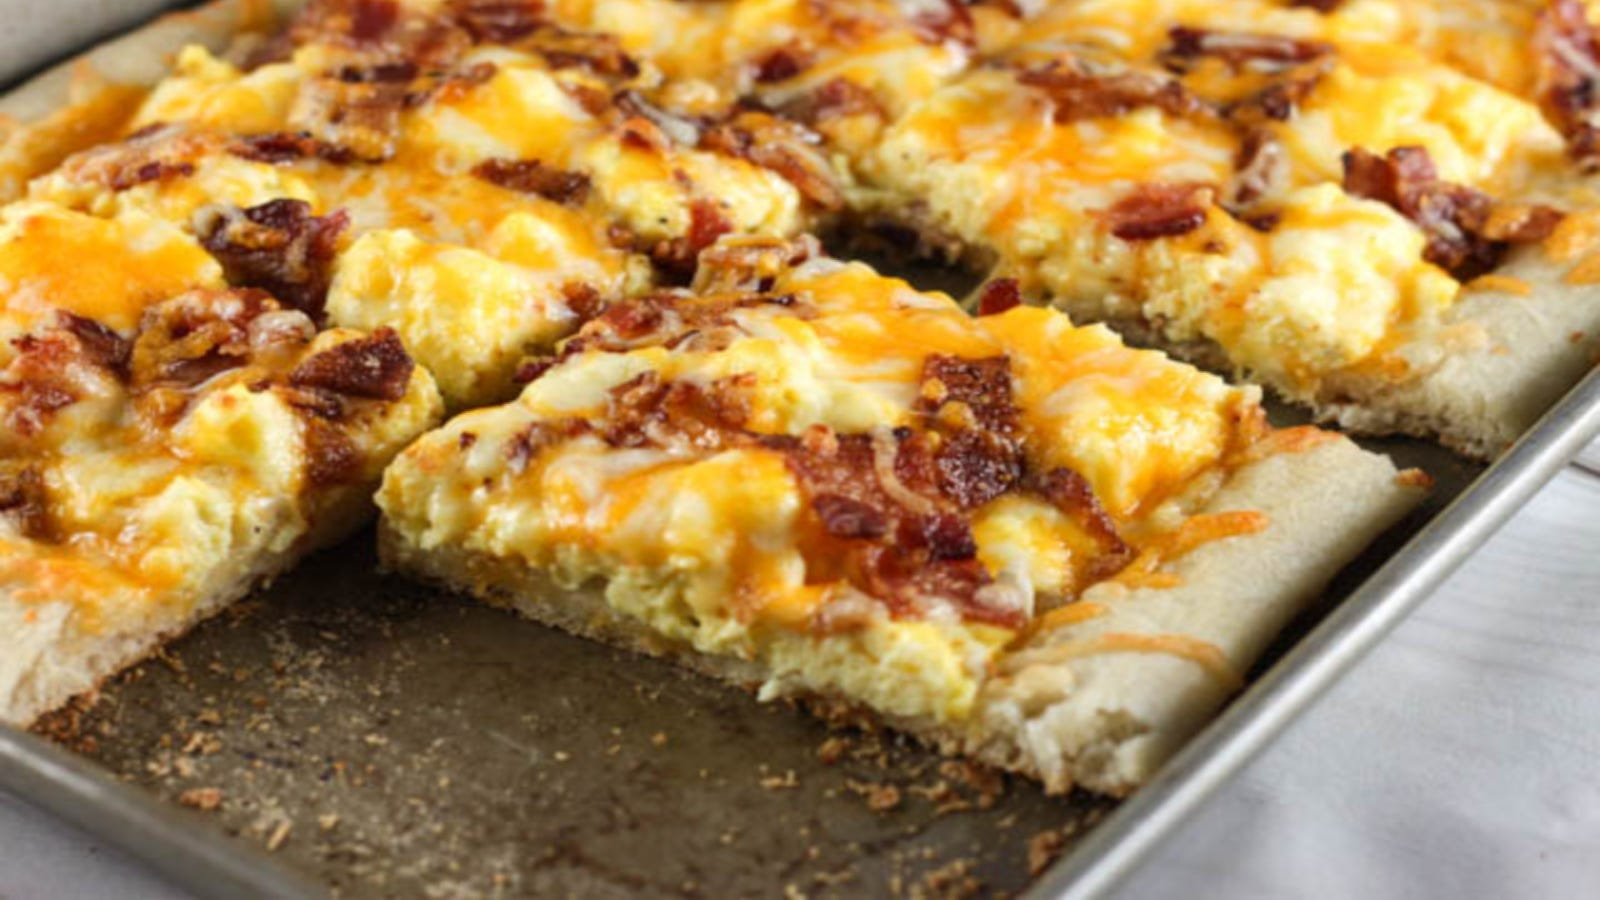 A sheet pan of breakfast pizza topped with scrambled eggs, bacon, and cheese.